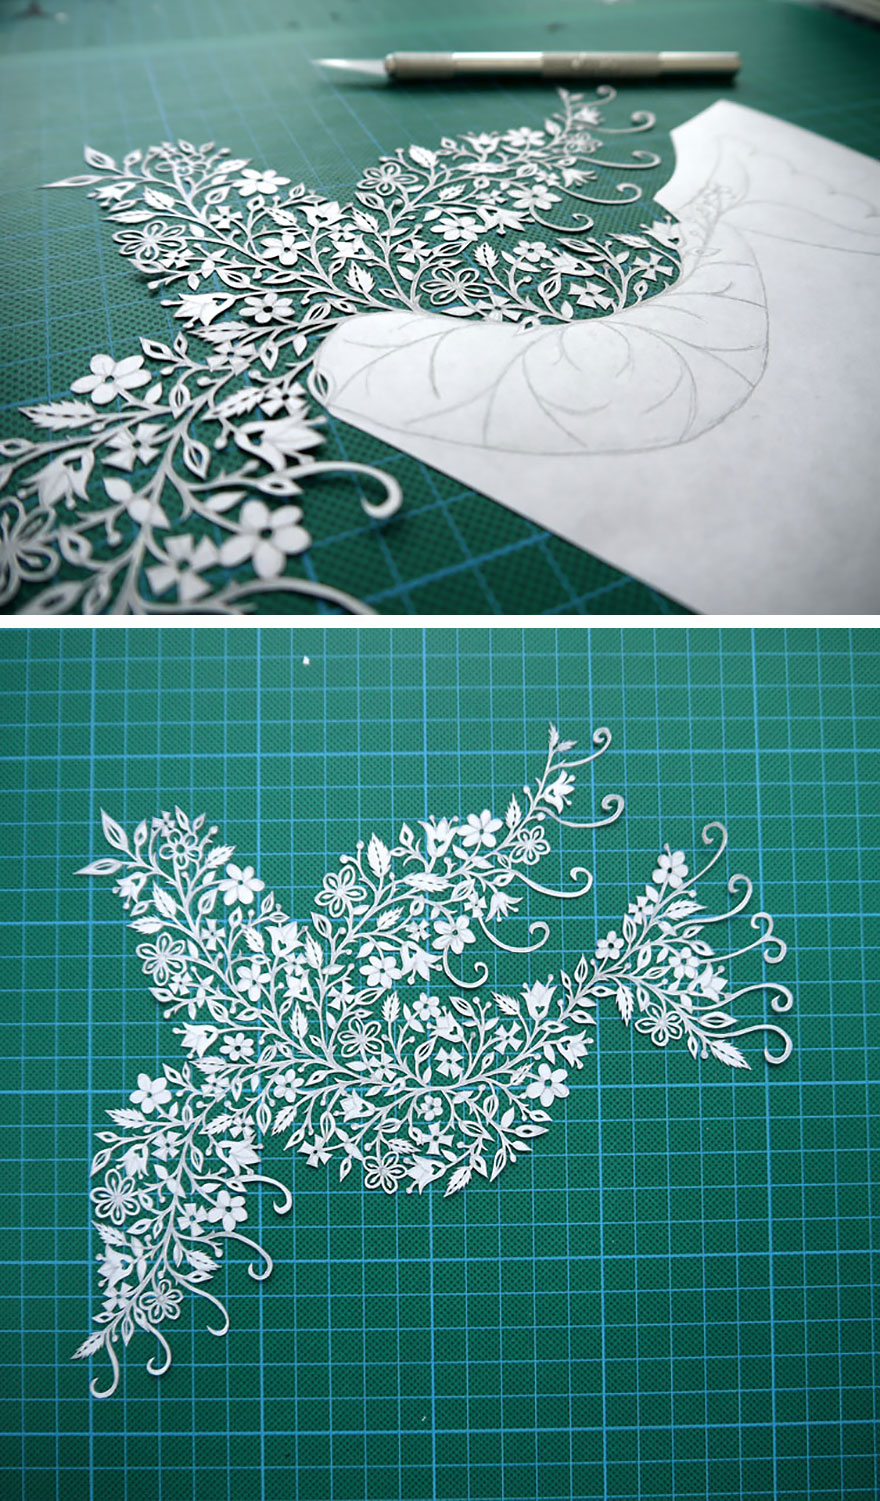 Artist Hand-Cuts Insanely Intricate Paper Art From Single Sheets Of Paper